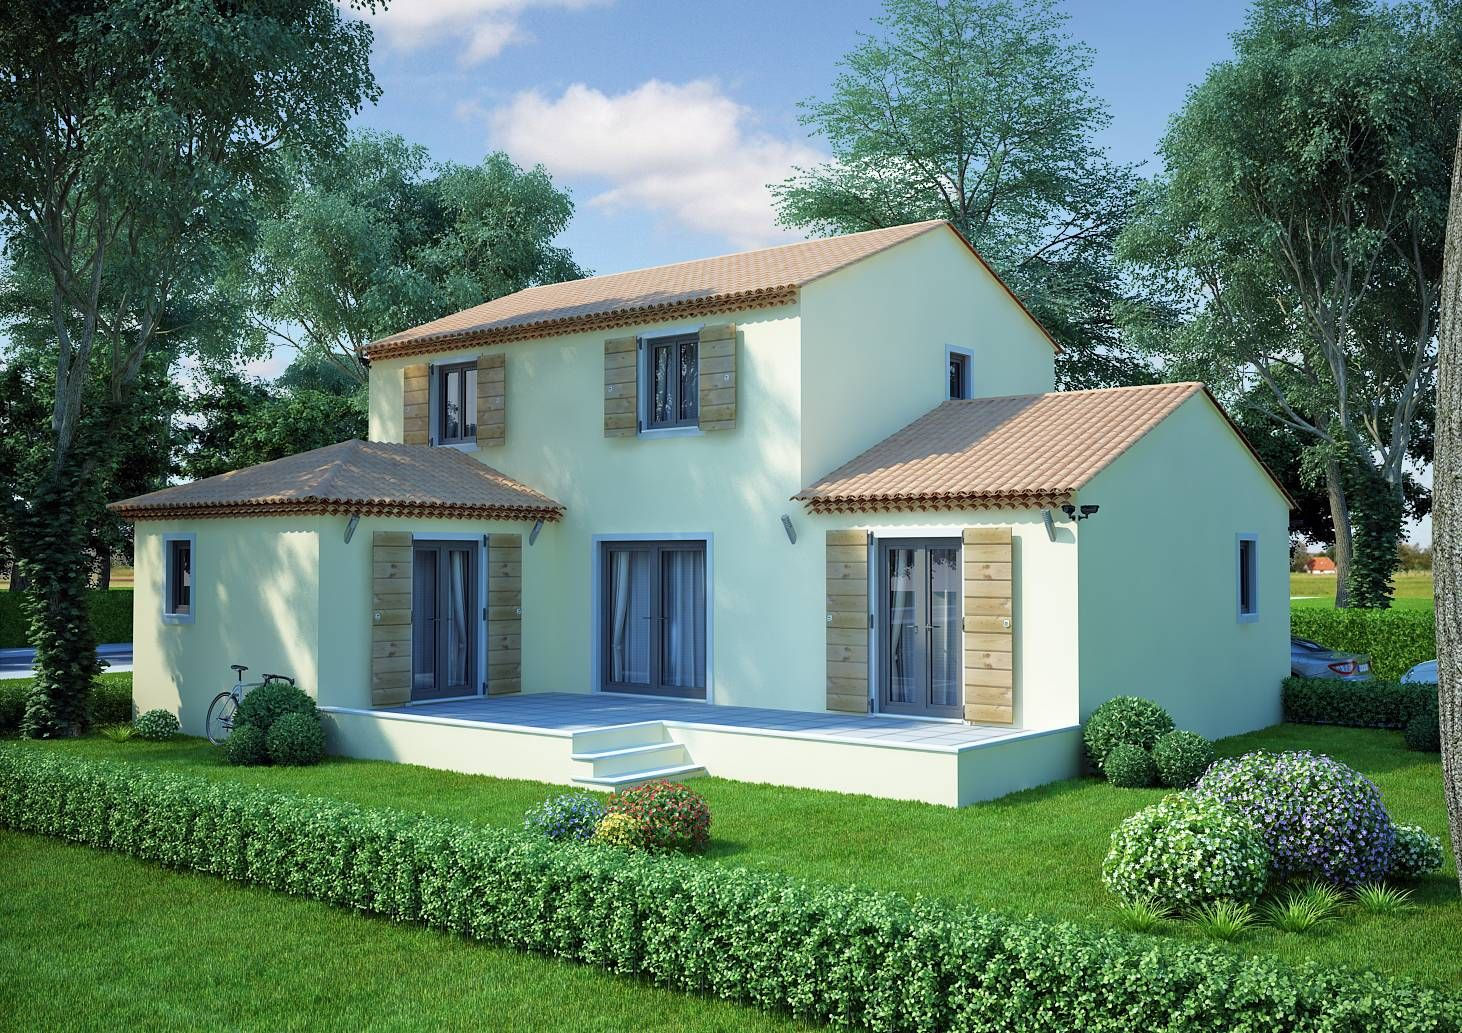 Maison en l de 130m2 lavande traditionnel azur logement for Modele entree maison